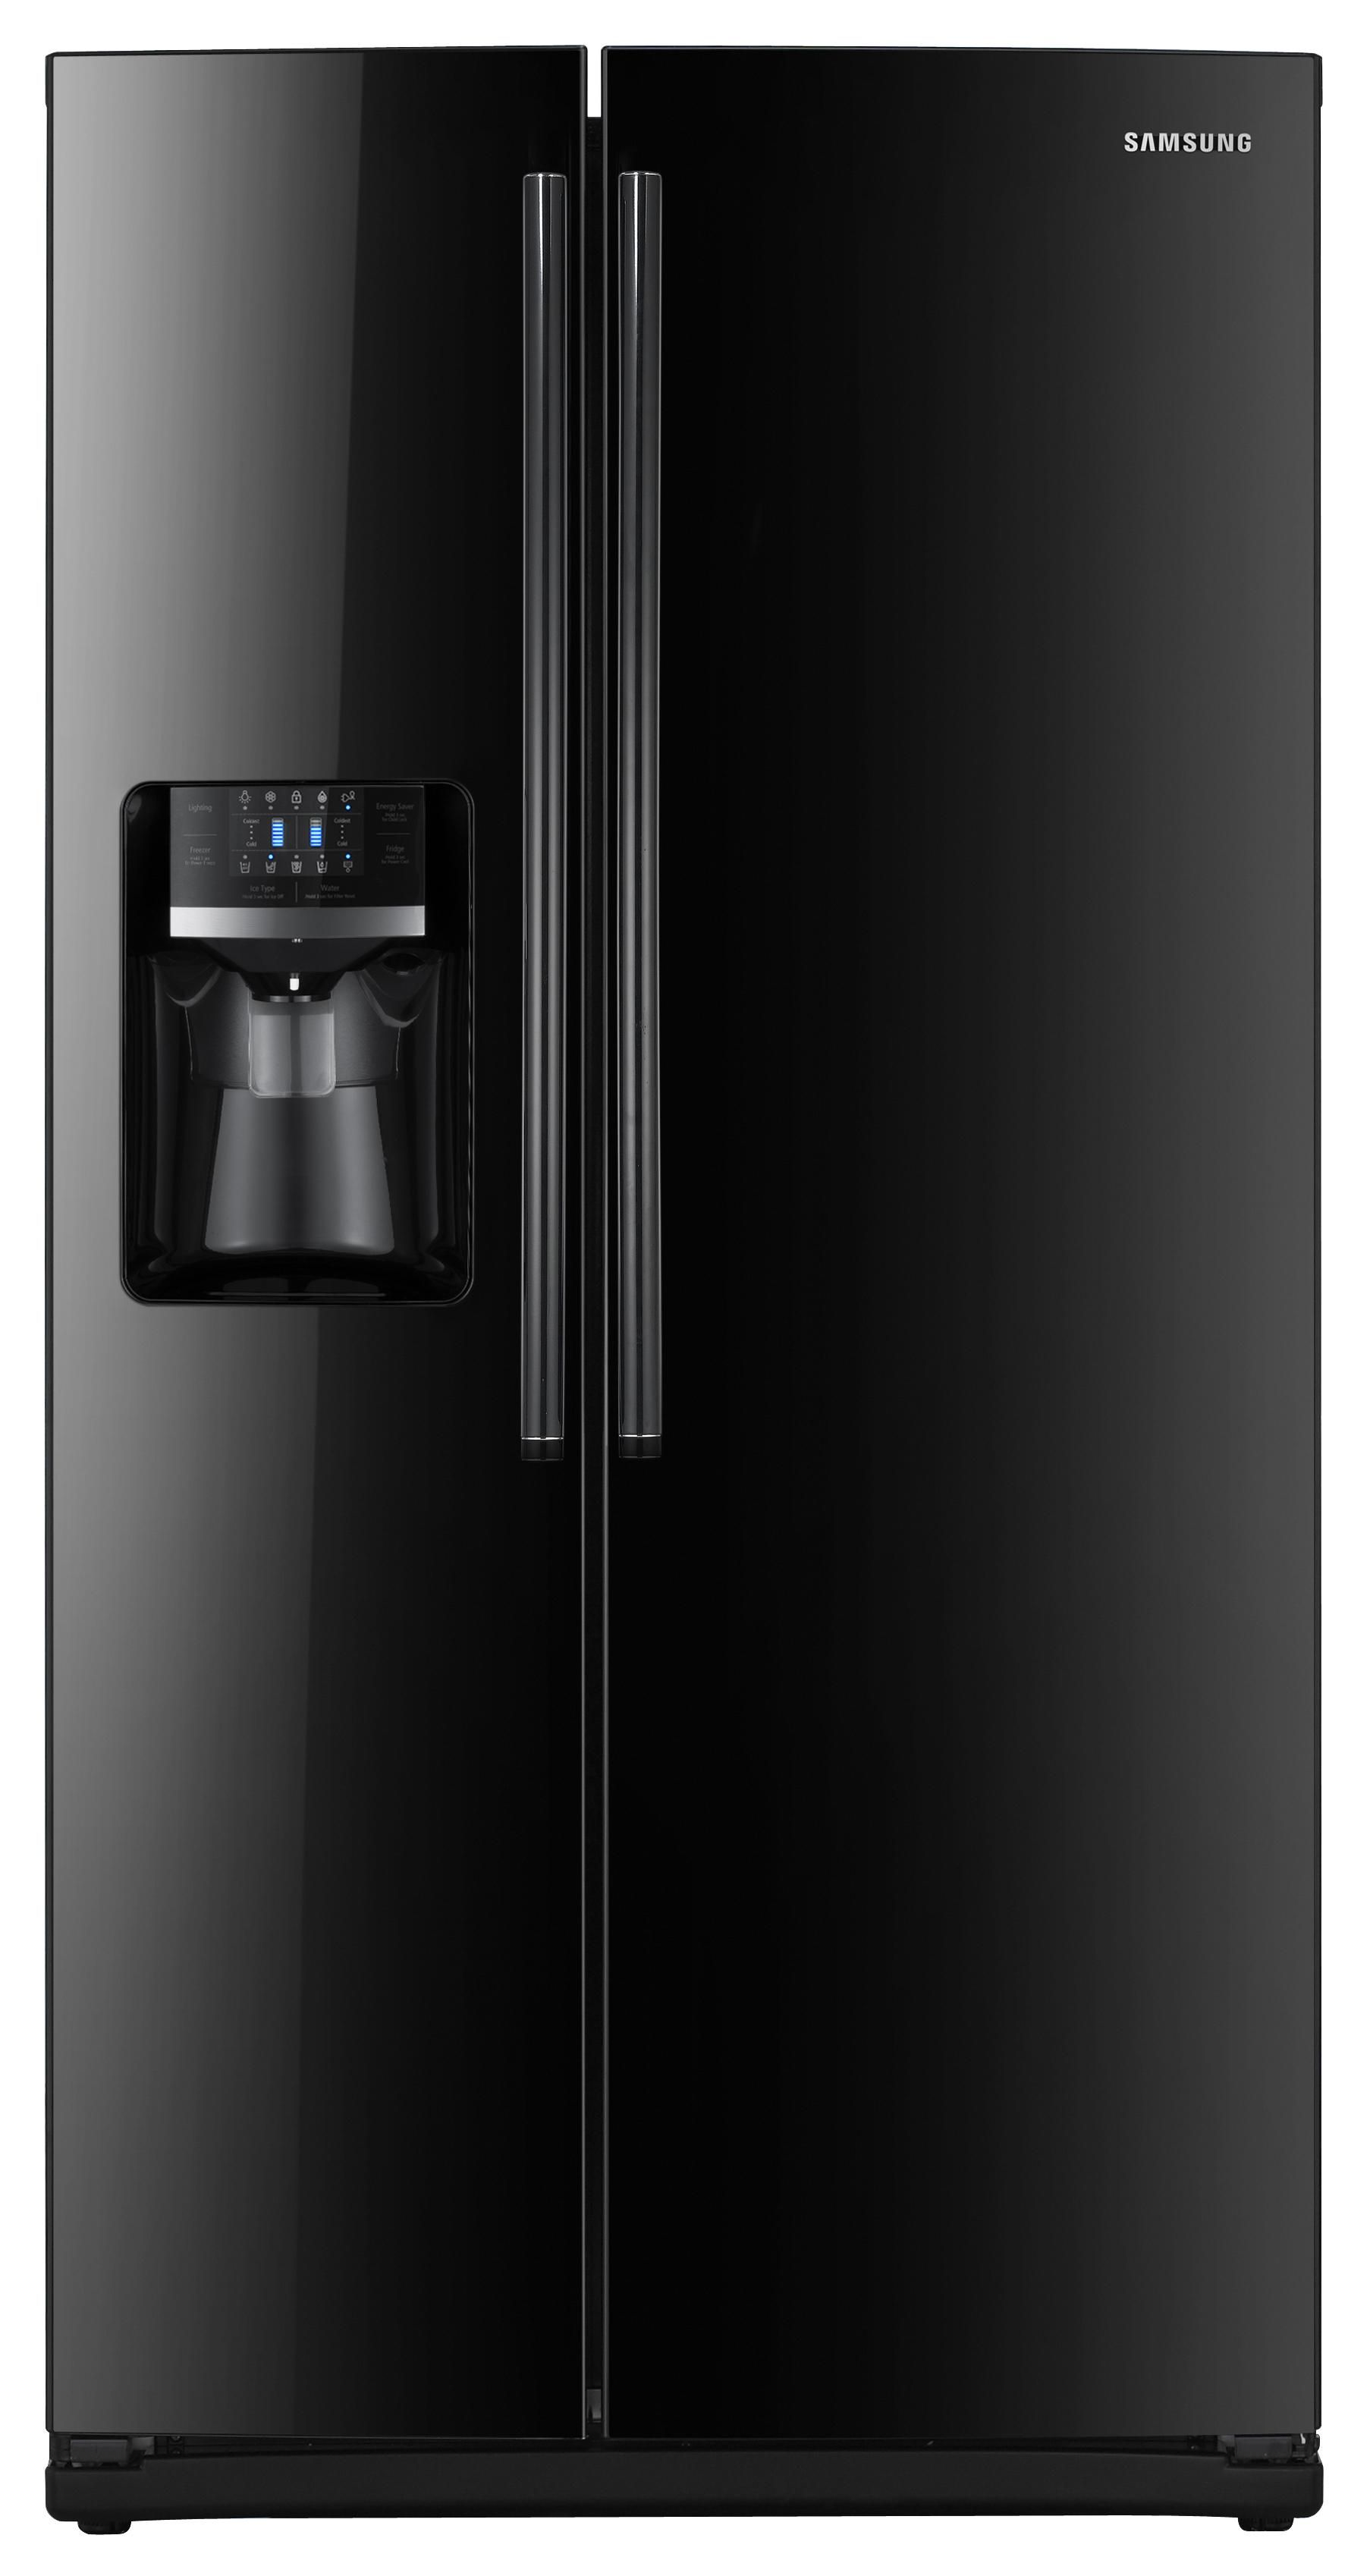 26 Cu Ft Side By Side Refrigerator By Samsung Appliances Is Energy Star Qualified Features Side By Side Refrigerator Samsung Appliances Samsung Refrigerator